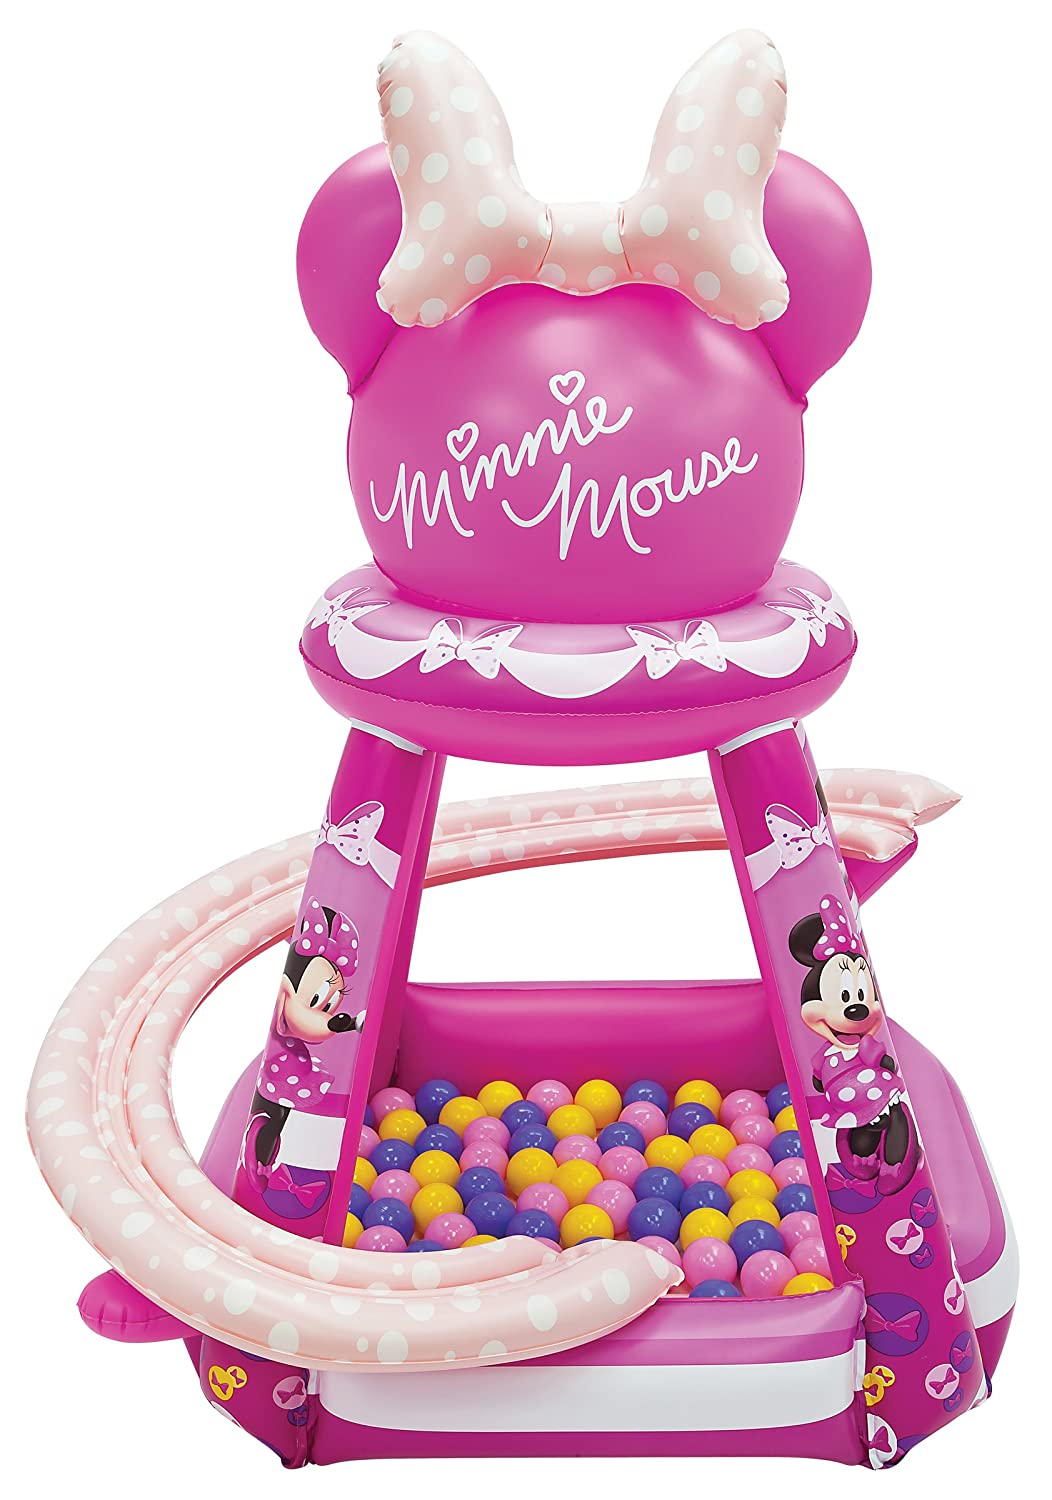 Minnie Mouse Buttons and Bows Ball Pit, 1 Inflatable & 50 Sof-Flex Balls, Pink, 43 W x 43 D x 38 H Walt Disney 3315